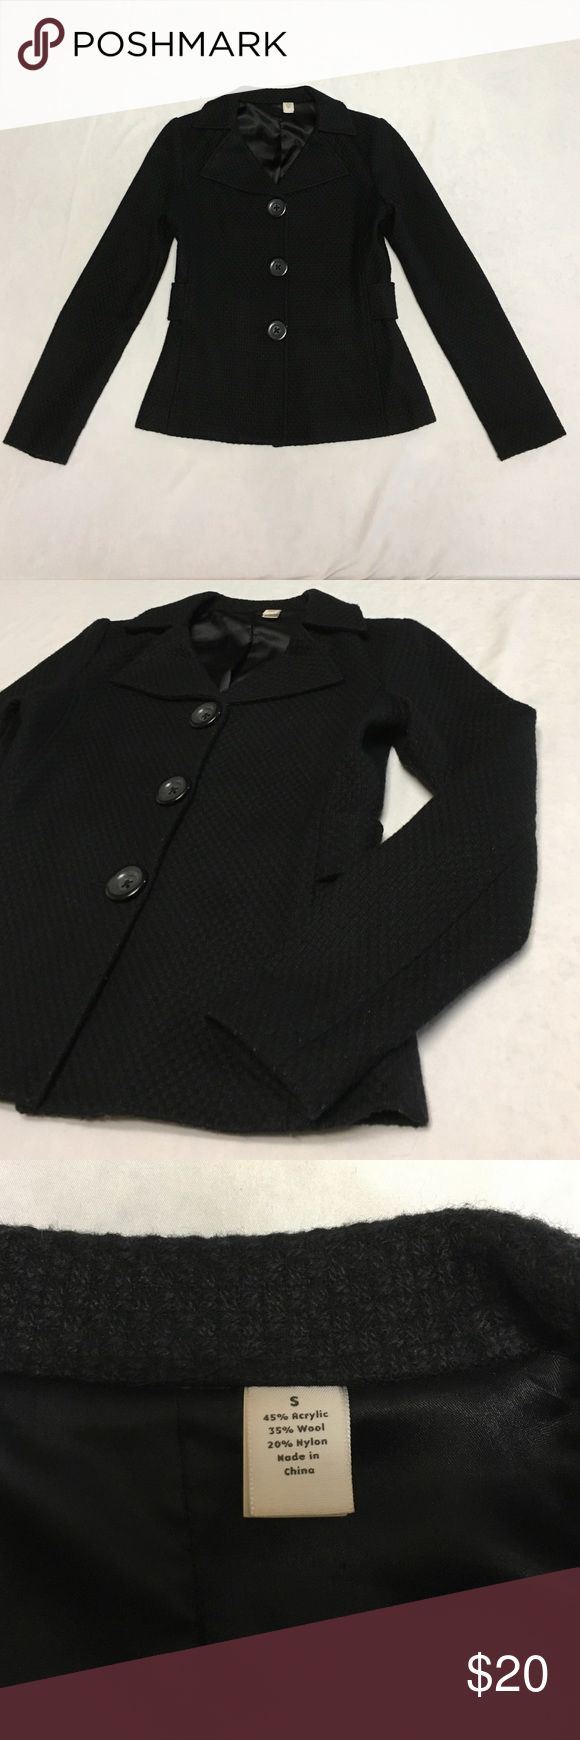 Acrylic Wool Blend Blazer Small Black Excellent condition No Brand Tag Gap? Coat Blazer Jacket     Jet Black Tweed Jackets & Coats Blazers